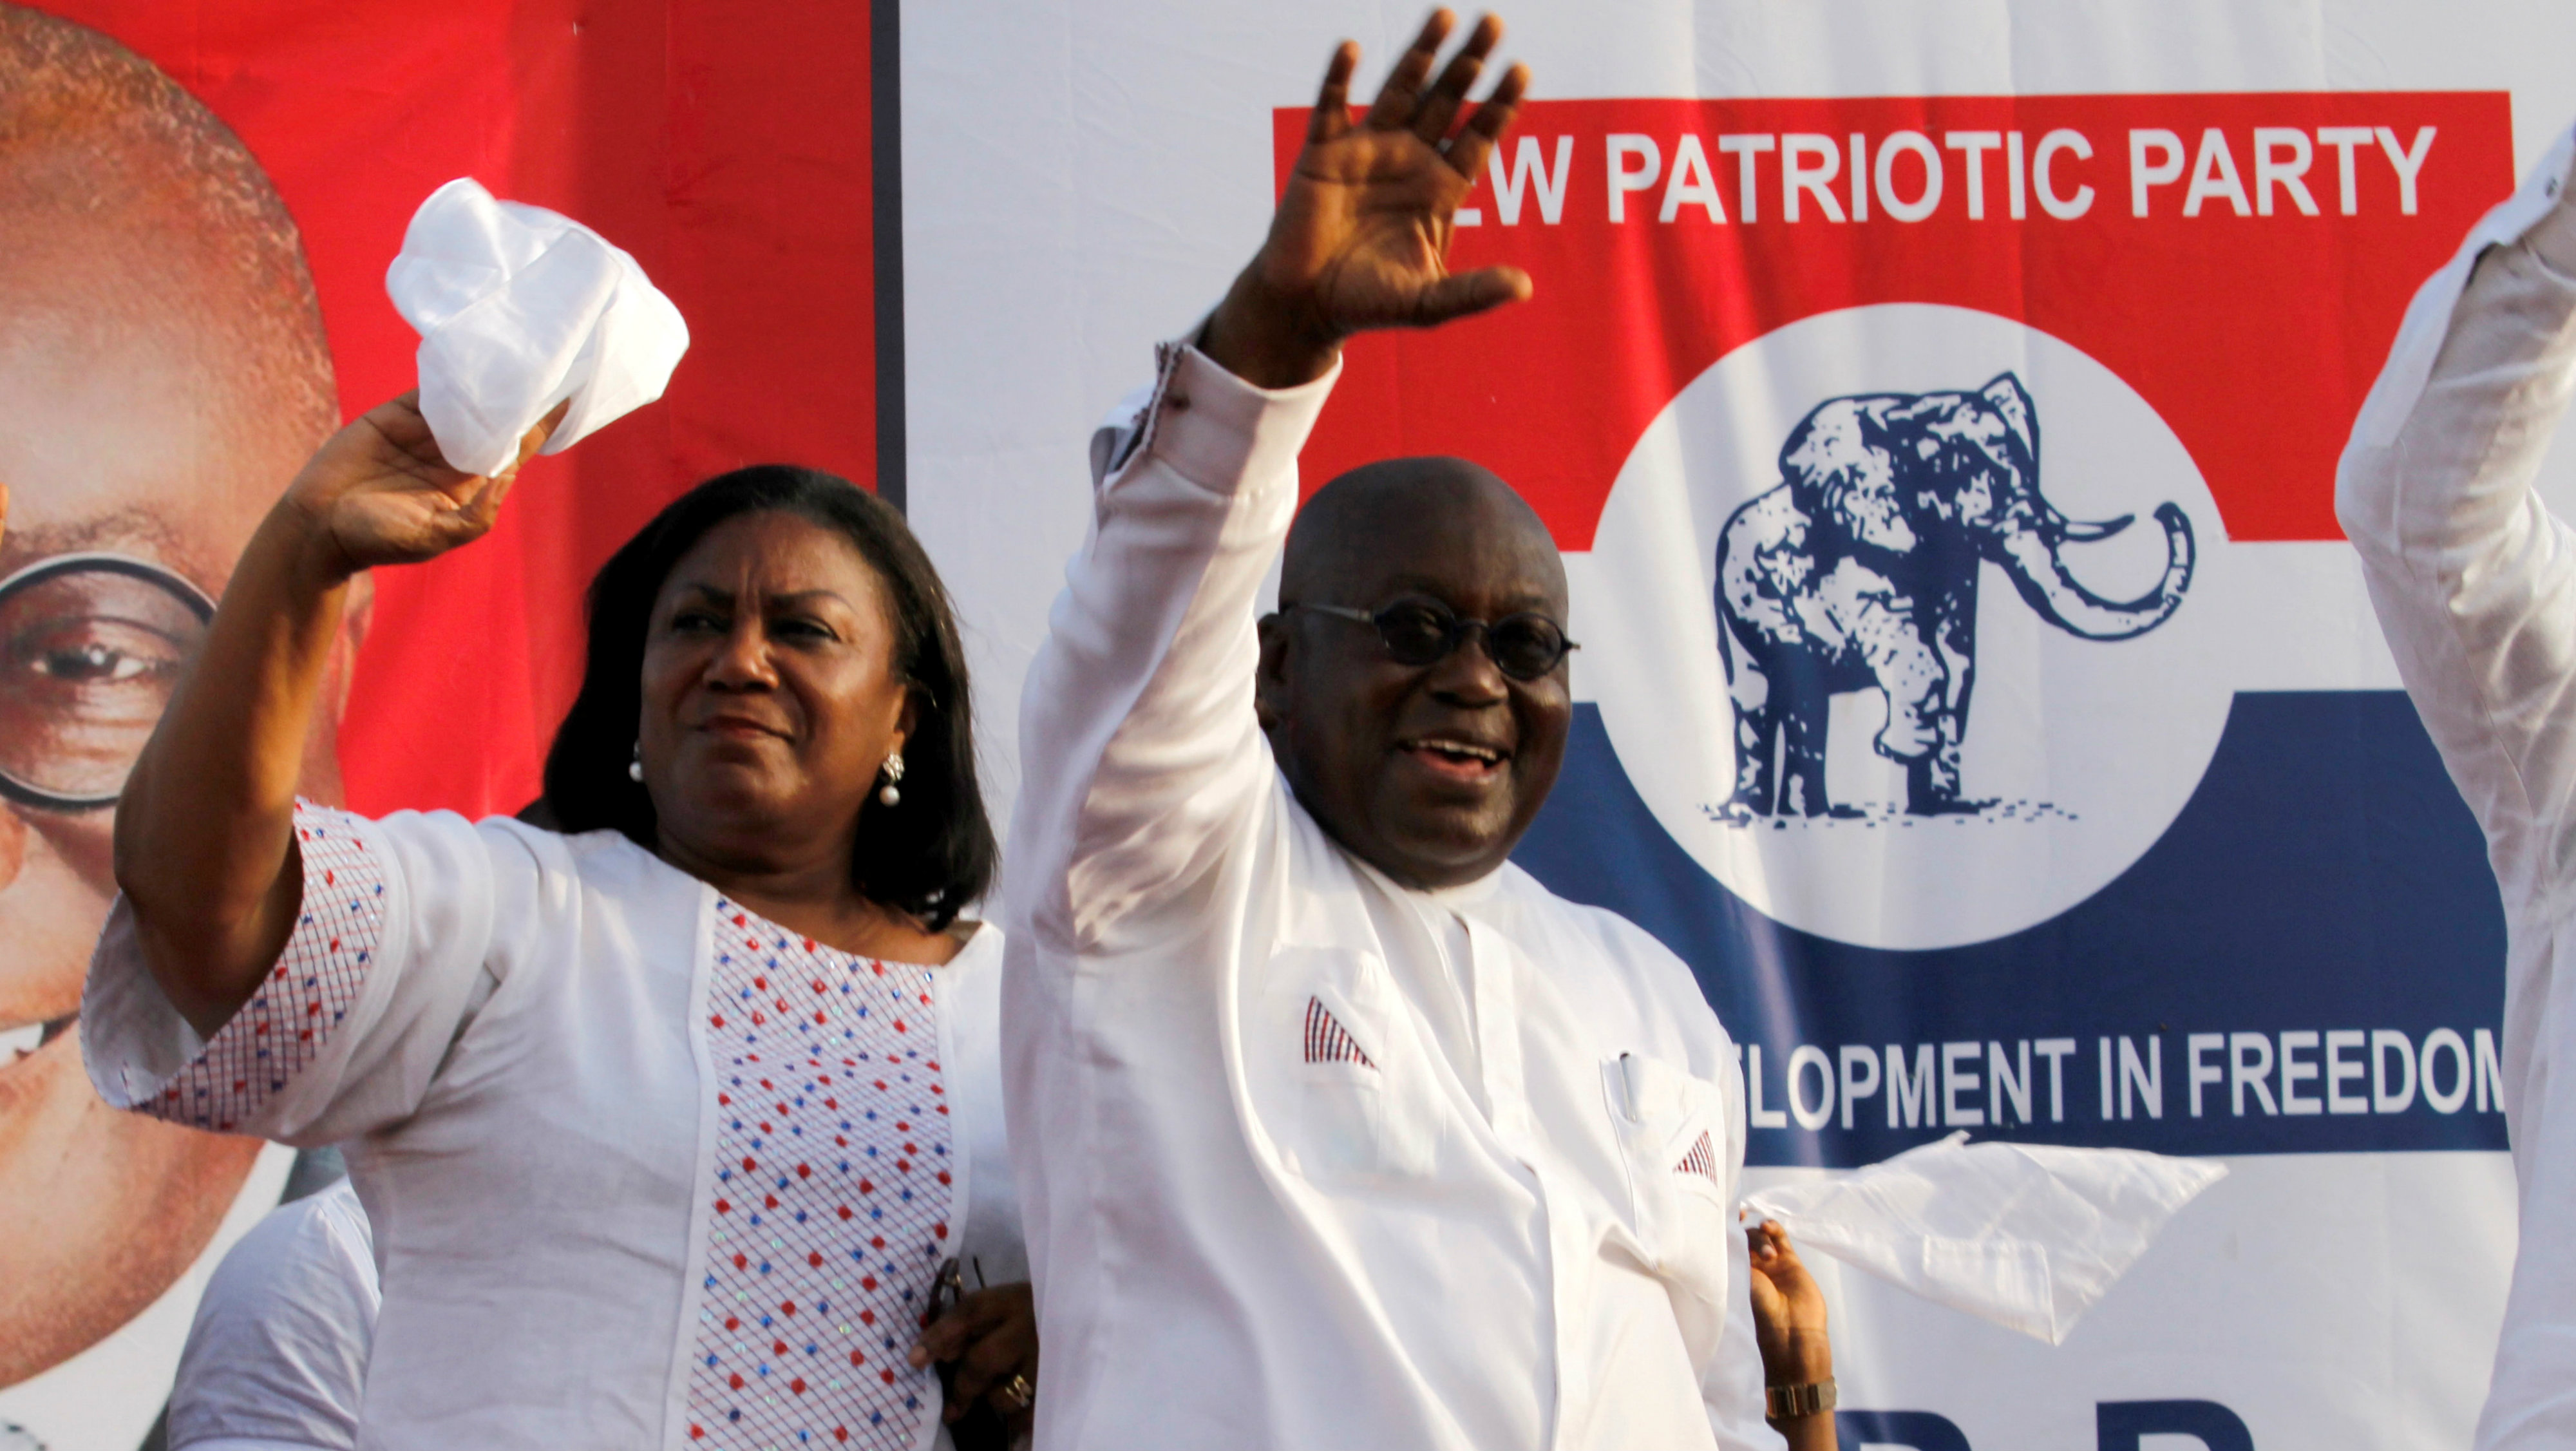 Ghanaian presidential candidate Nana Akufo-Addo of the opposition New Patriotic Party (NPP) waves with his wife Rebecca during his last rally at a trade fair in Accra December 4, 2016.